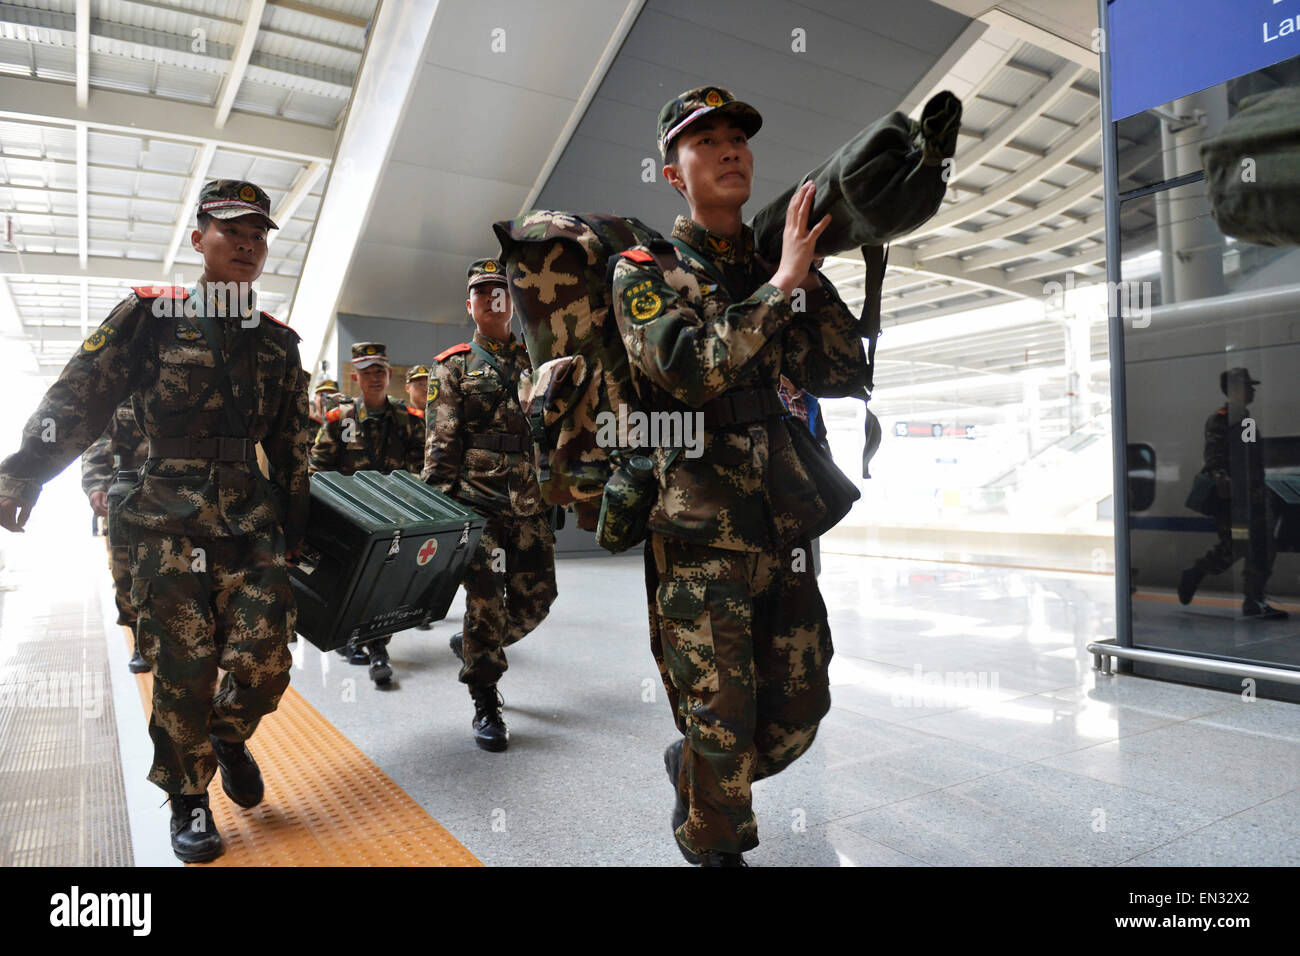 Lanzhou, China's Gansu Province. 27th Apr, 2015. Soldiers carry supplies and equipments to board a train at - Stock Image